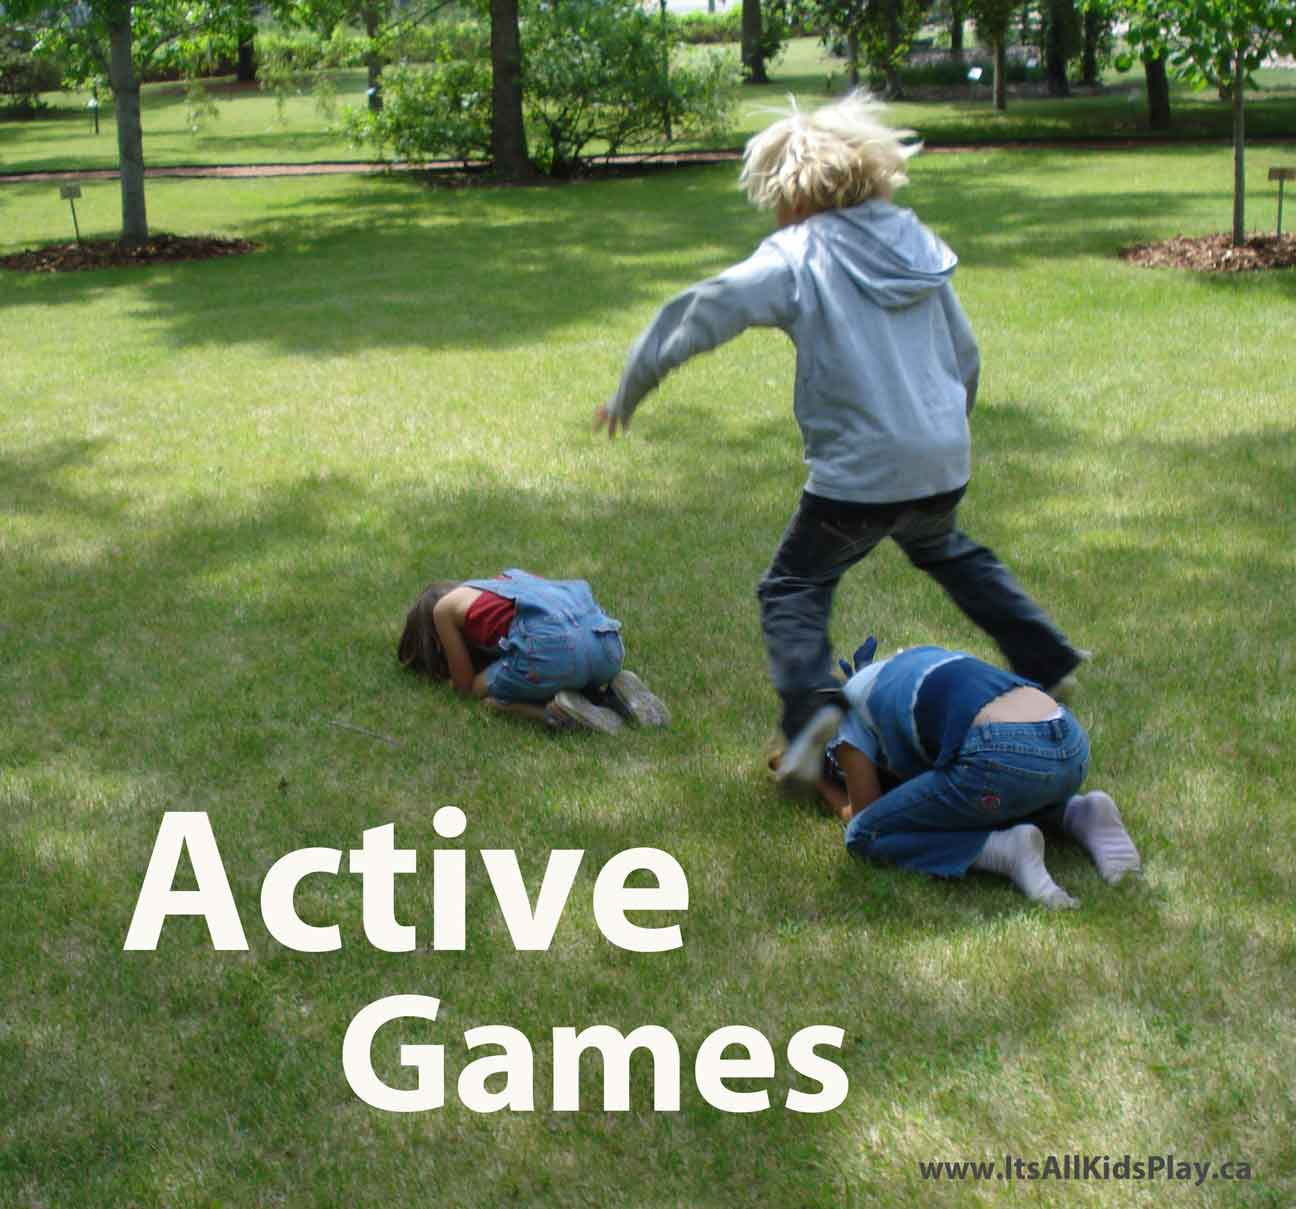 Why is it important for kids to play active games outside